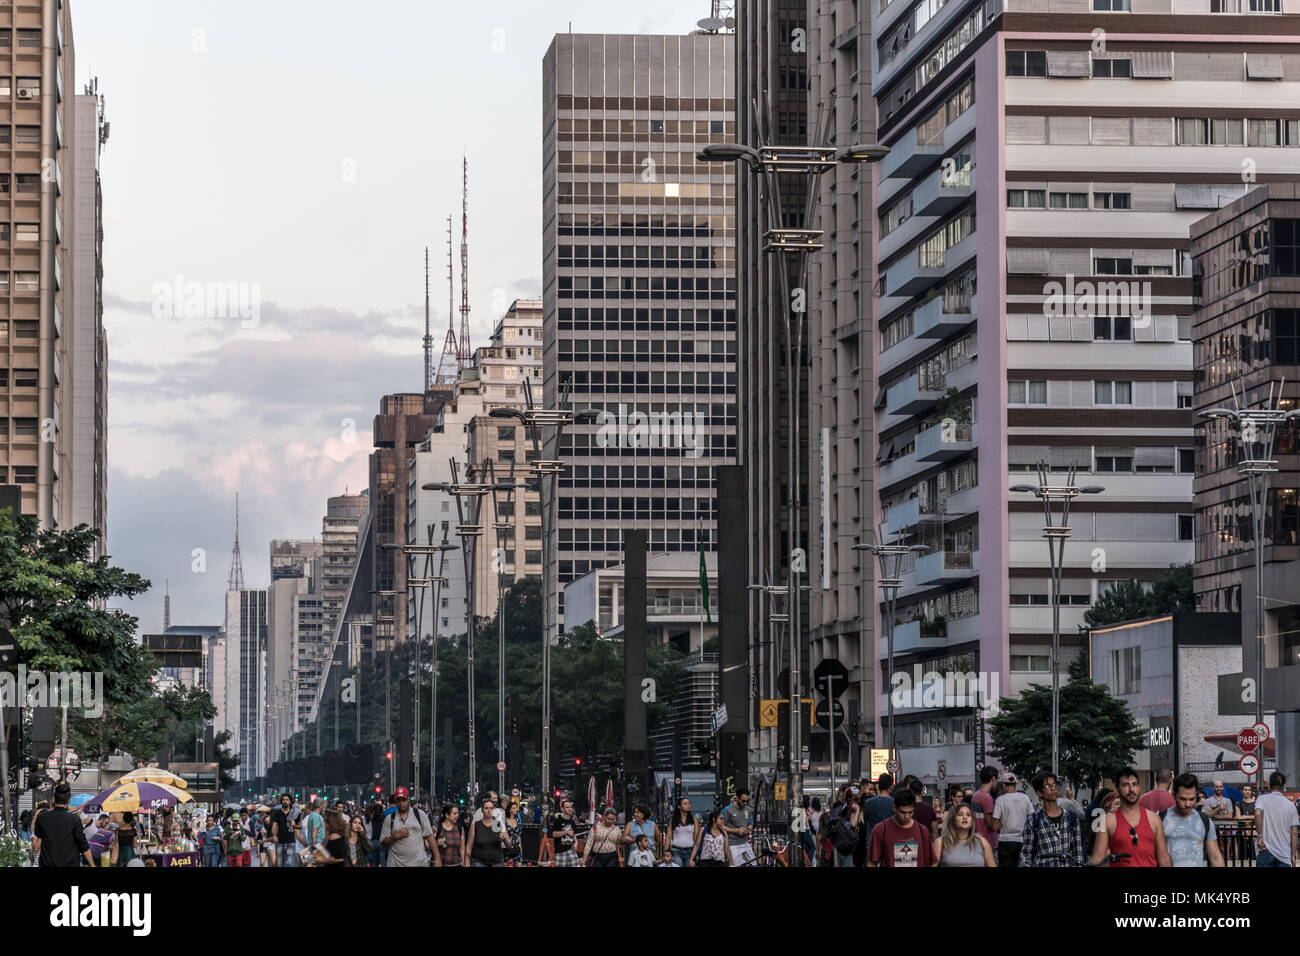 2018, May; Sao Paulo, Brazil. People and buildings on a Sunday at the famous Paulista Avenue. On sundays the avenue is closed for cars and opened for  - Stock Image